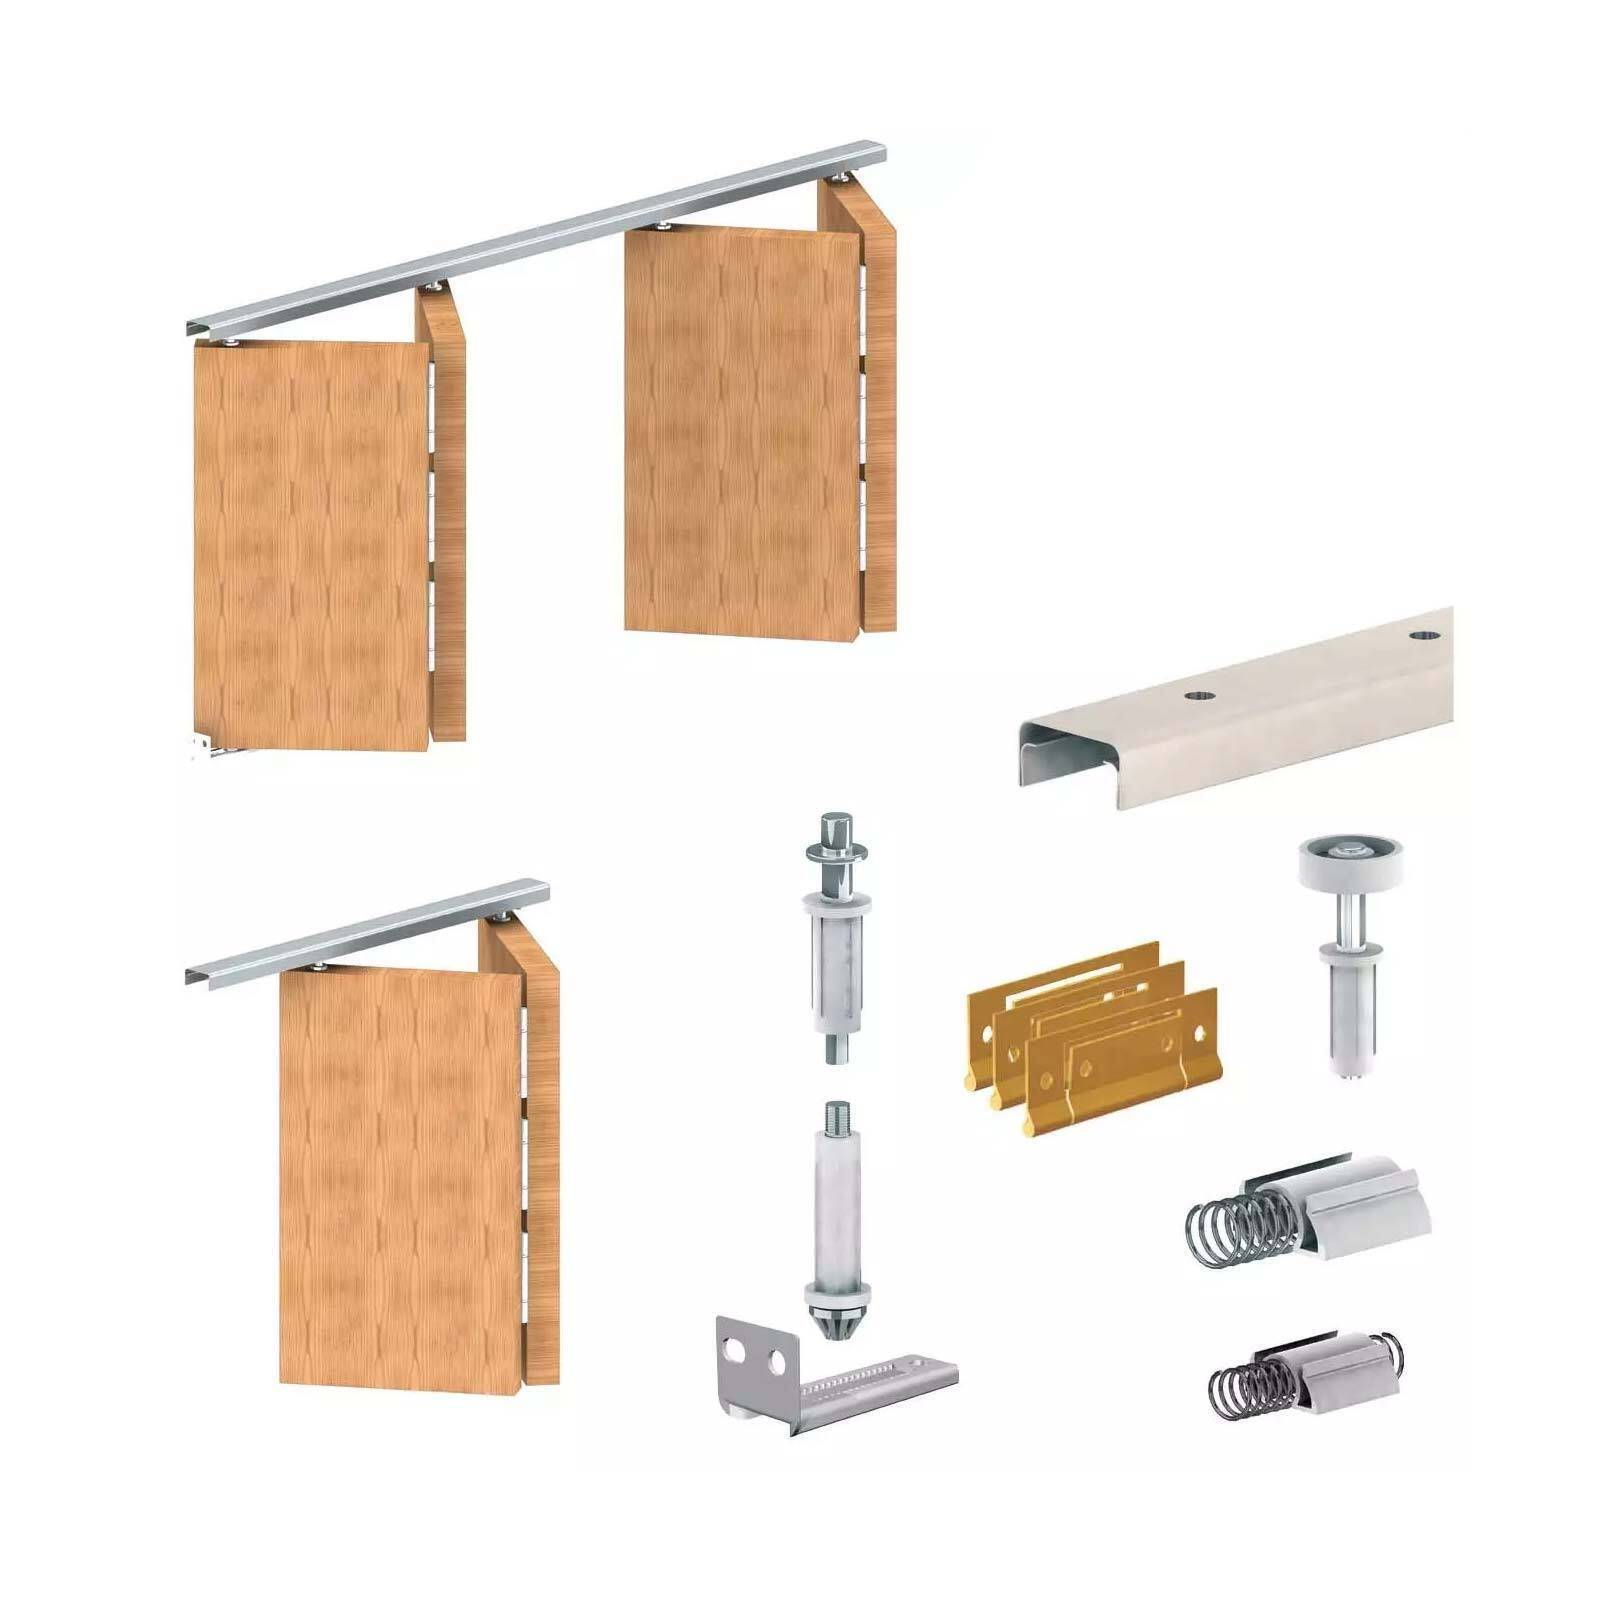 Apollo folding door gear diy track kit for Folding doors